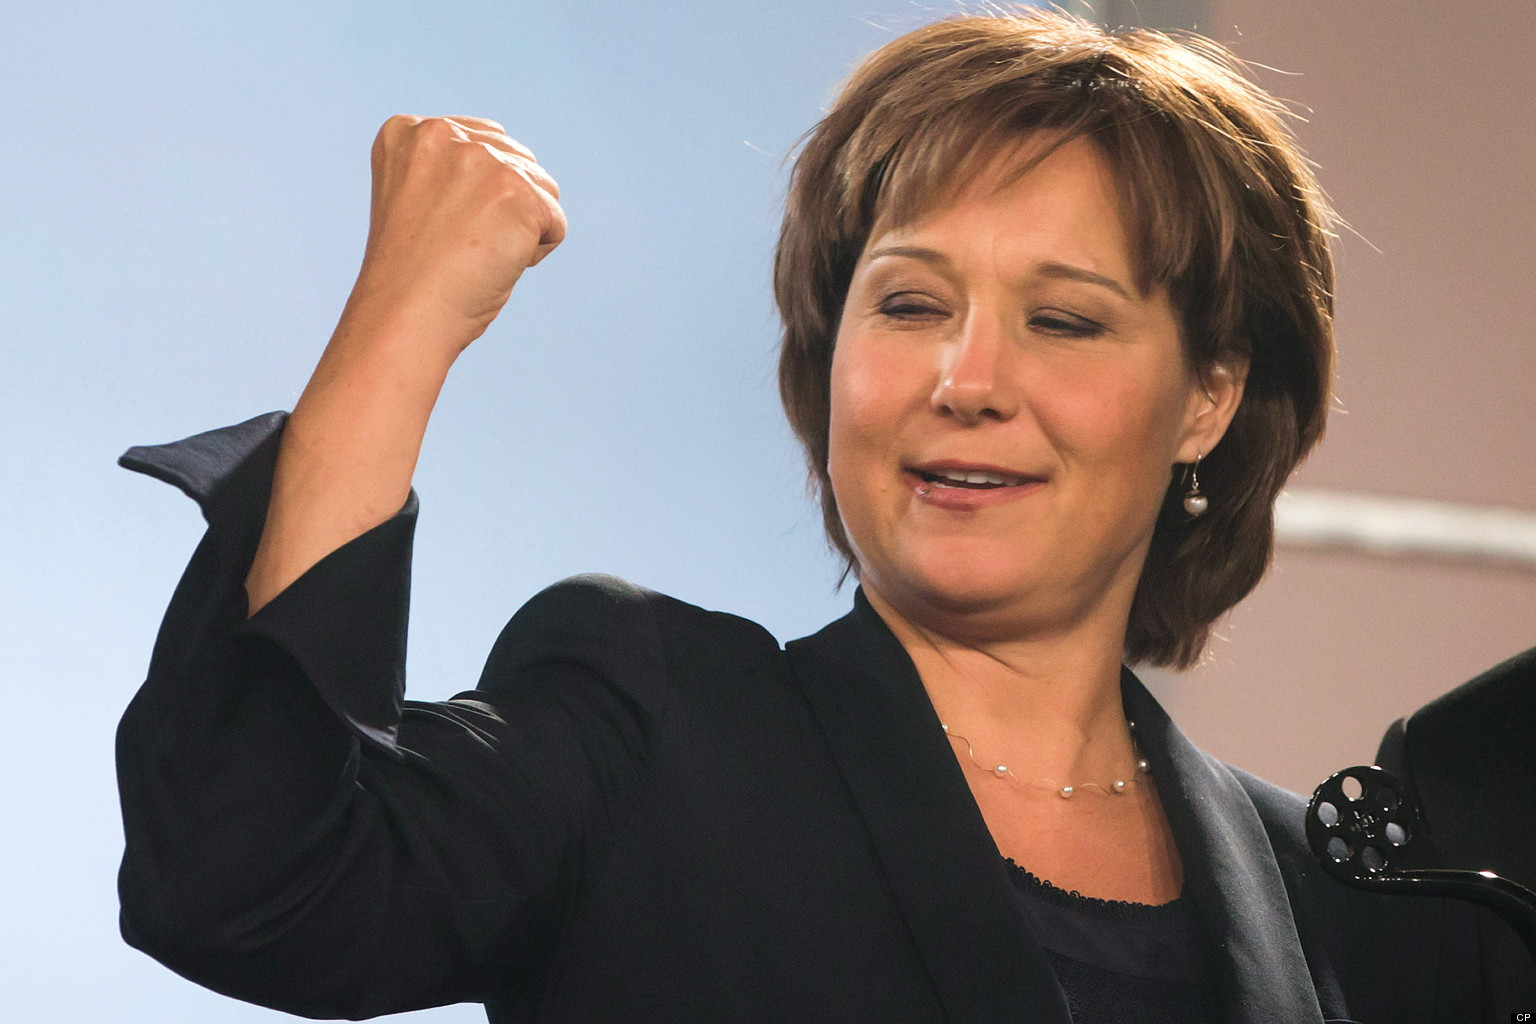 christy clark news